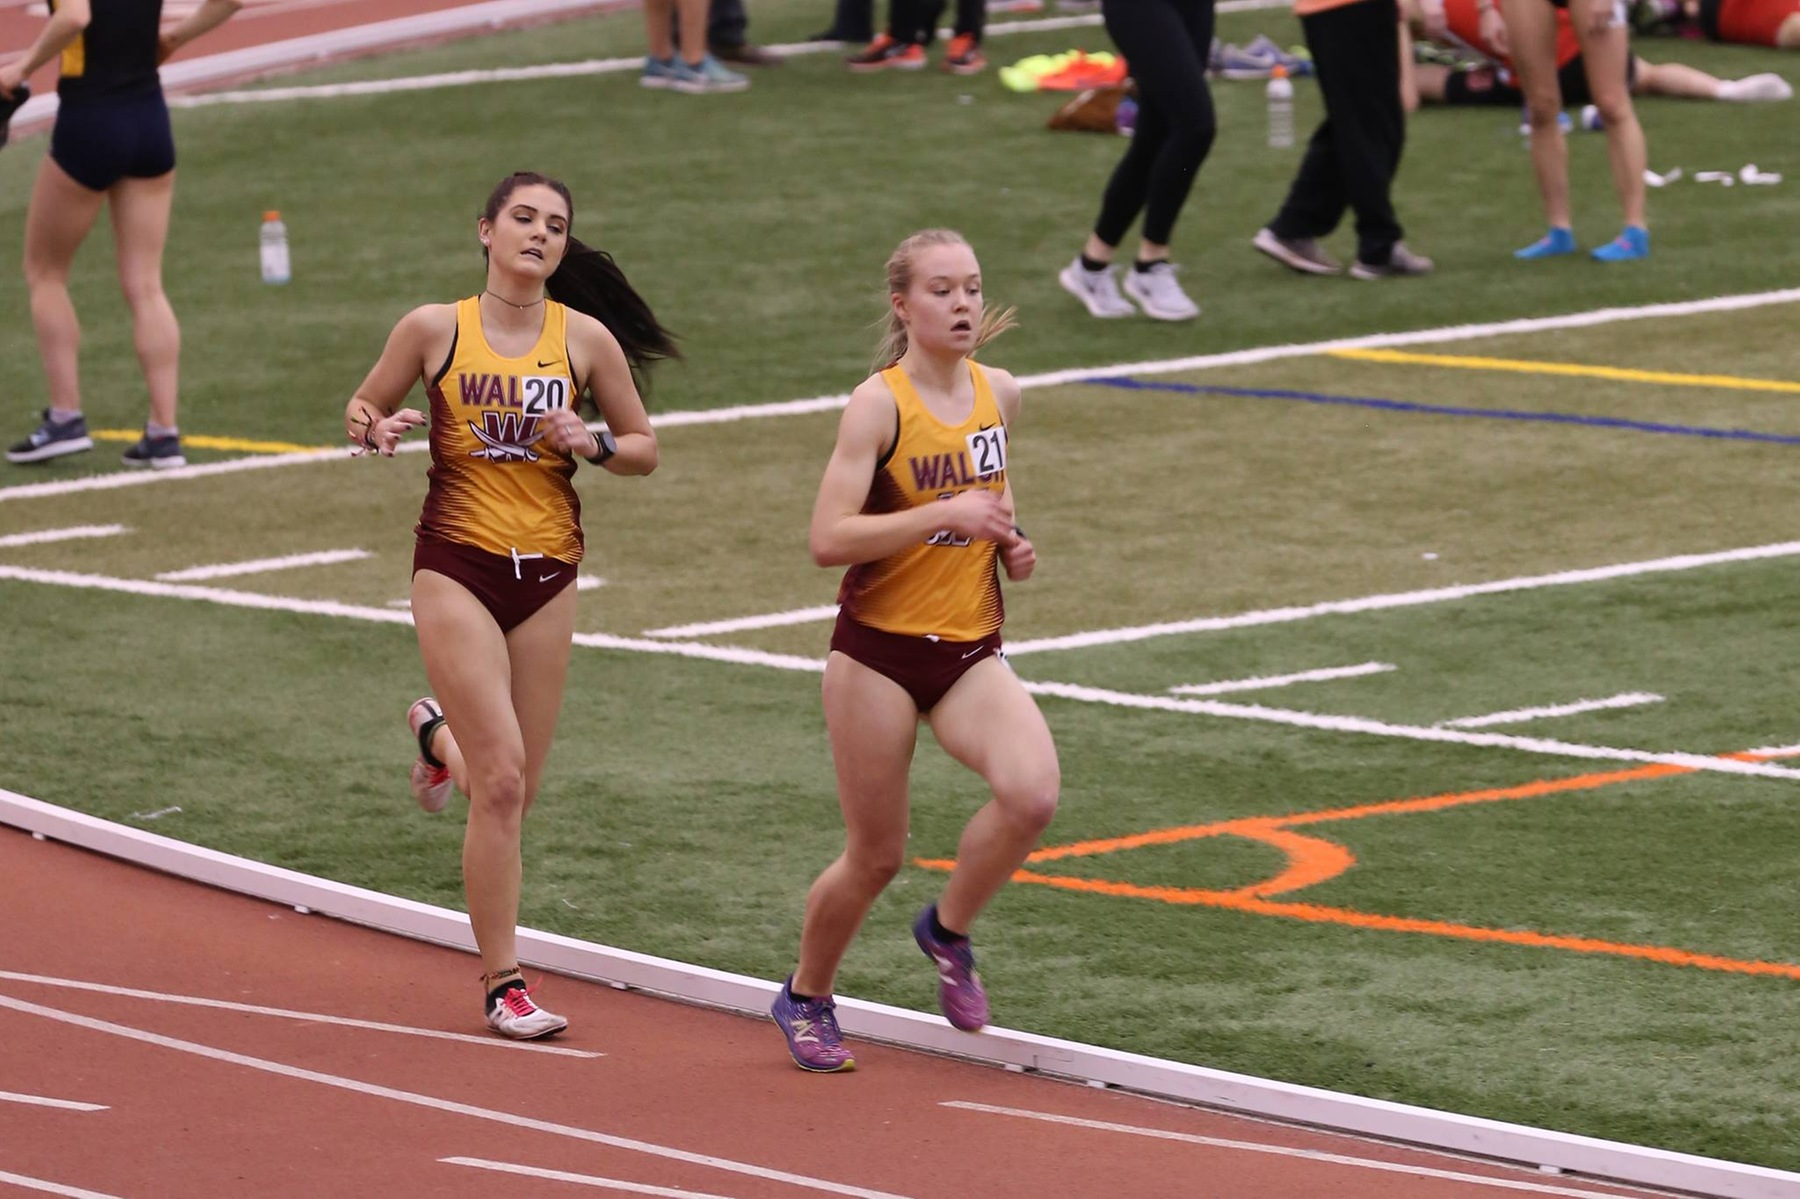 Cavs Have Successful Meet at Mount Union